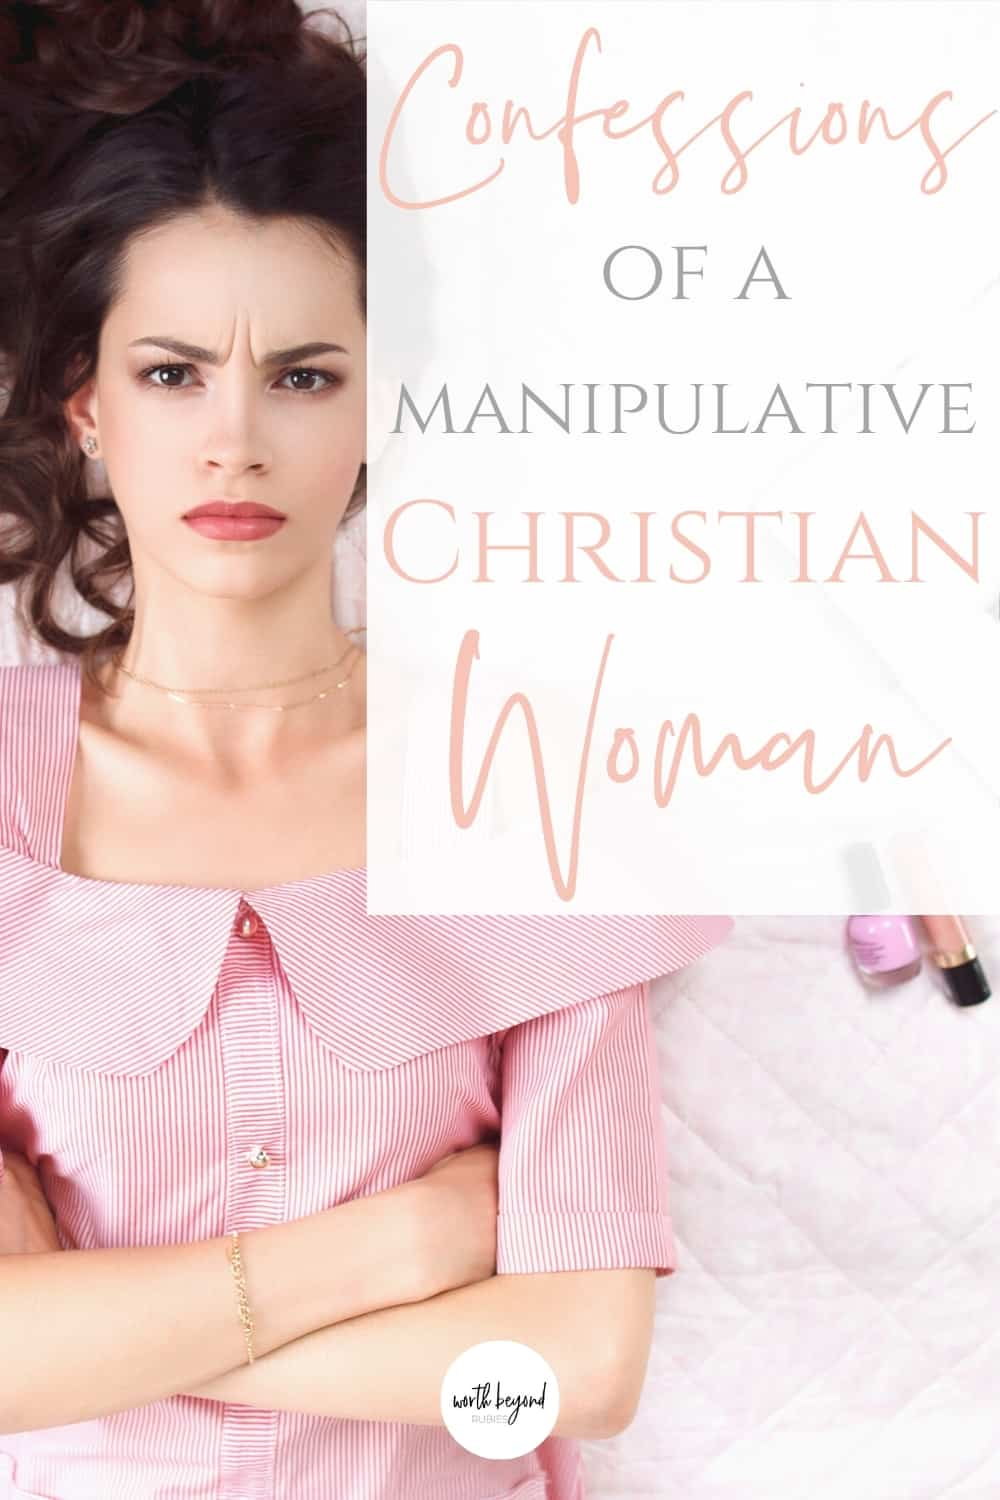 a woman in a pink dress lying back on a bed looking angry and text that says Confessions of a Manipulative Christian Woman